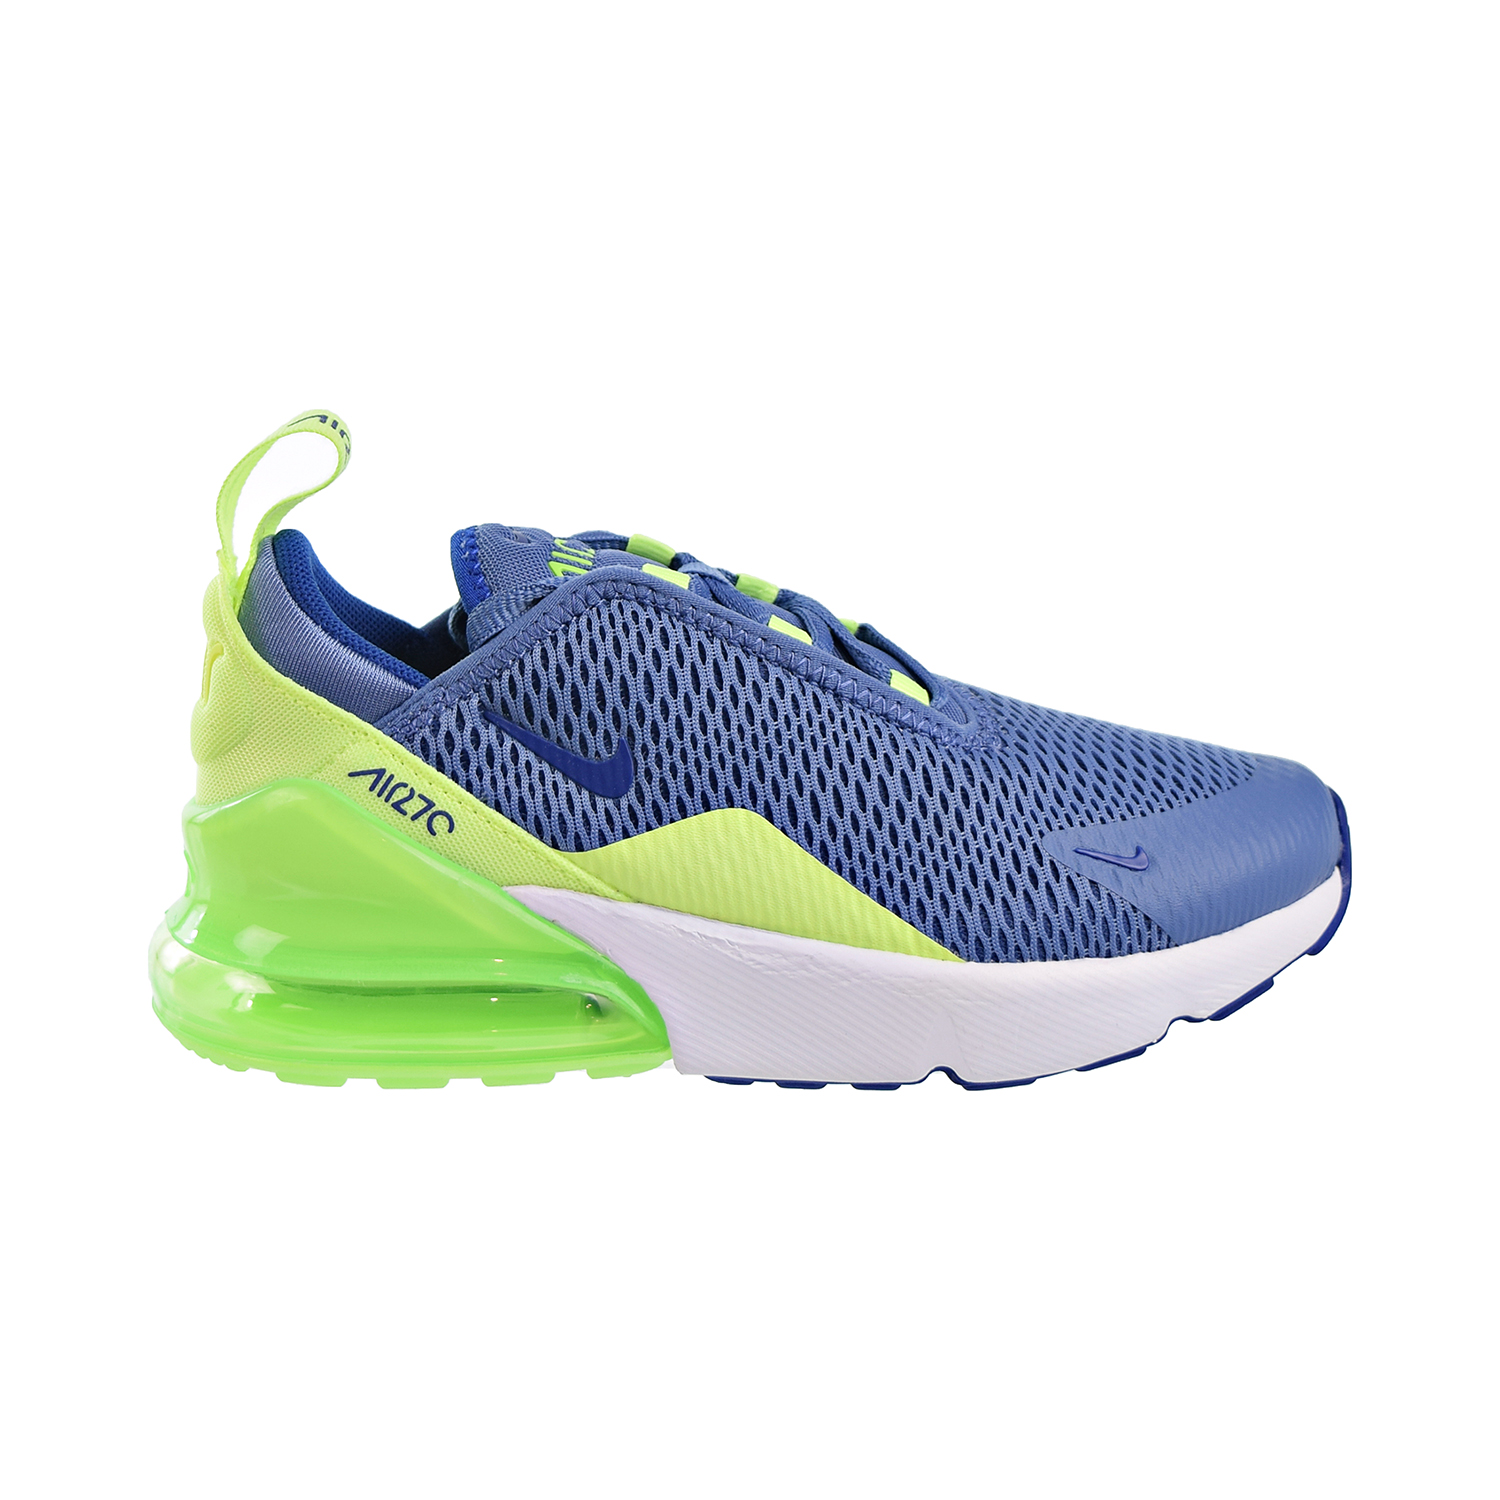 the best attitude 45a58 4efc5 Details about Nike Air Max 270 (PS) Little Kids Shoes Indigo Storm/Indigo  Force AO2372-406